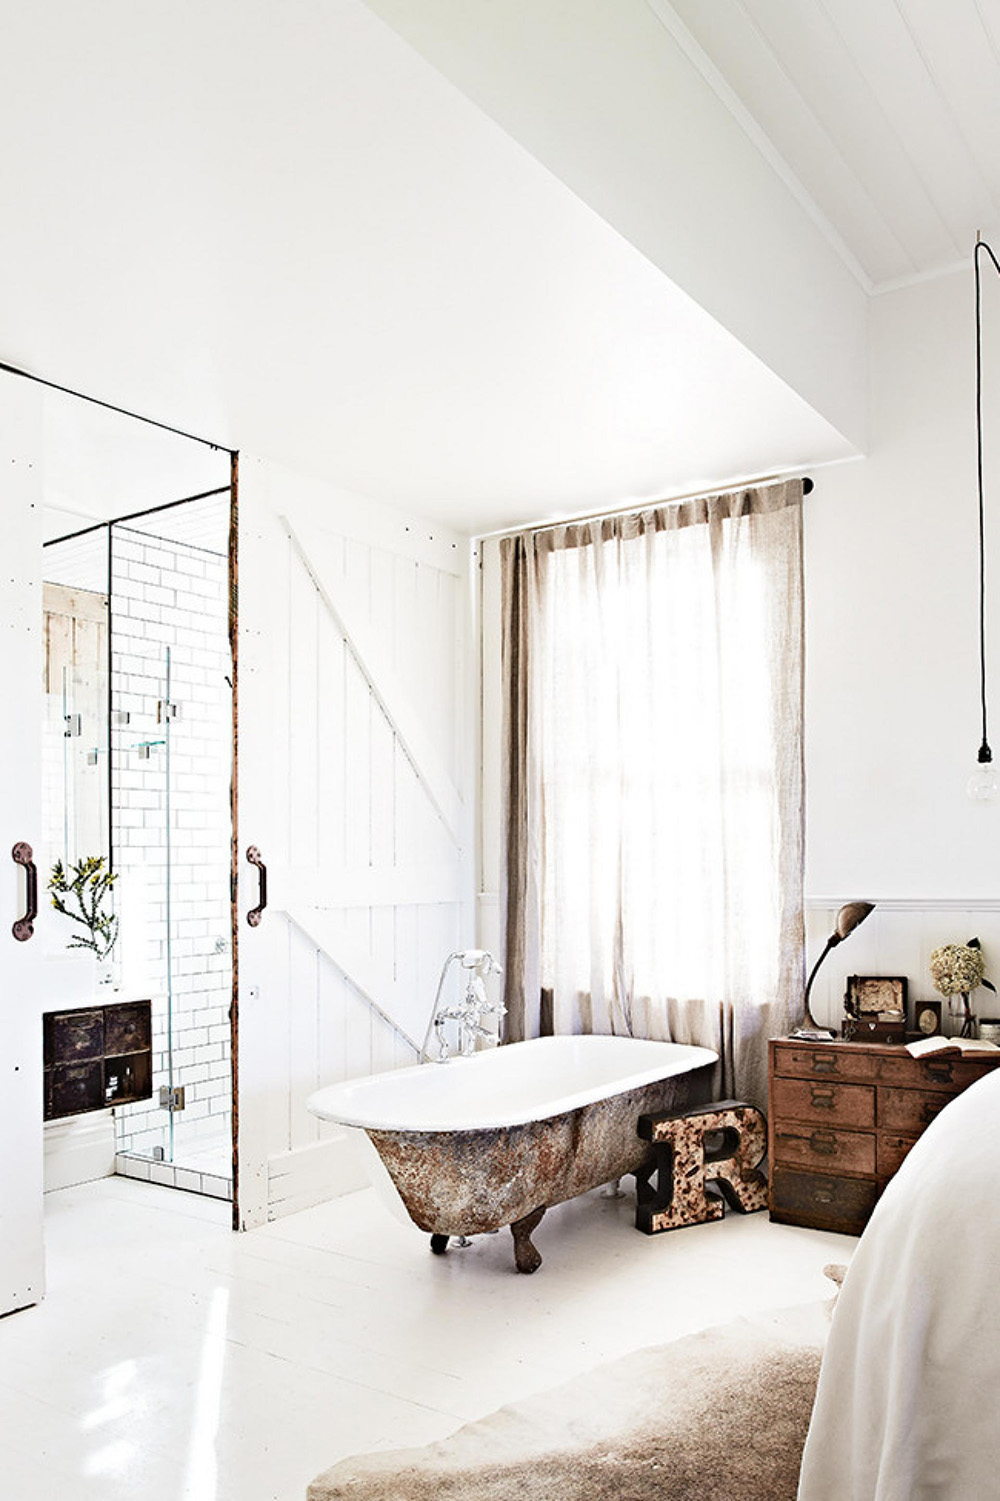 rustic-bathroom-bath-tub-white-mar14-20150605105049~q75,dx1920y-u1r1g0